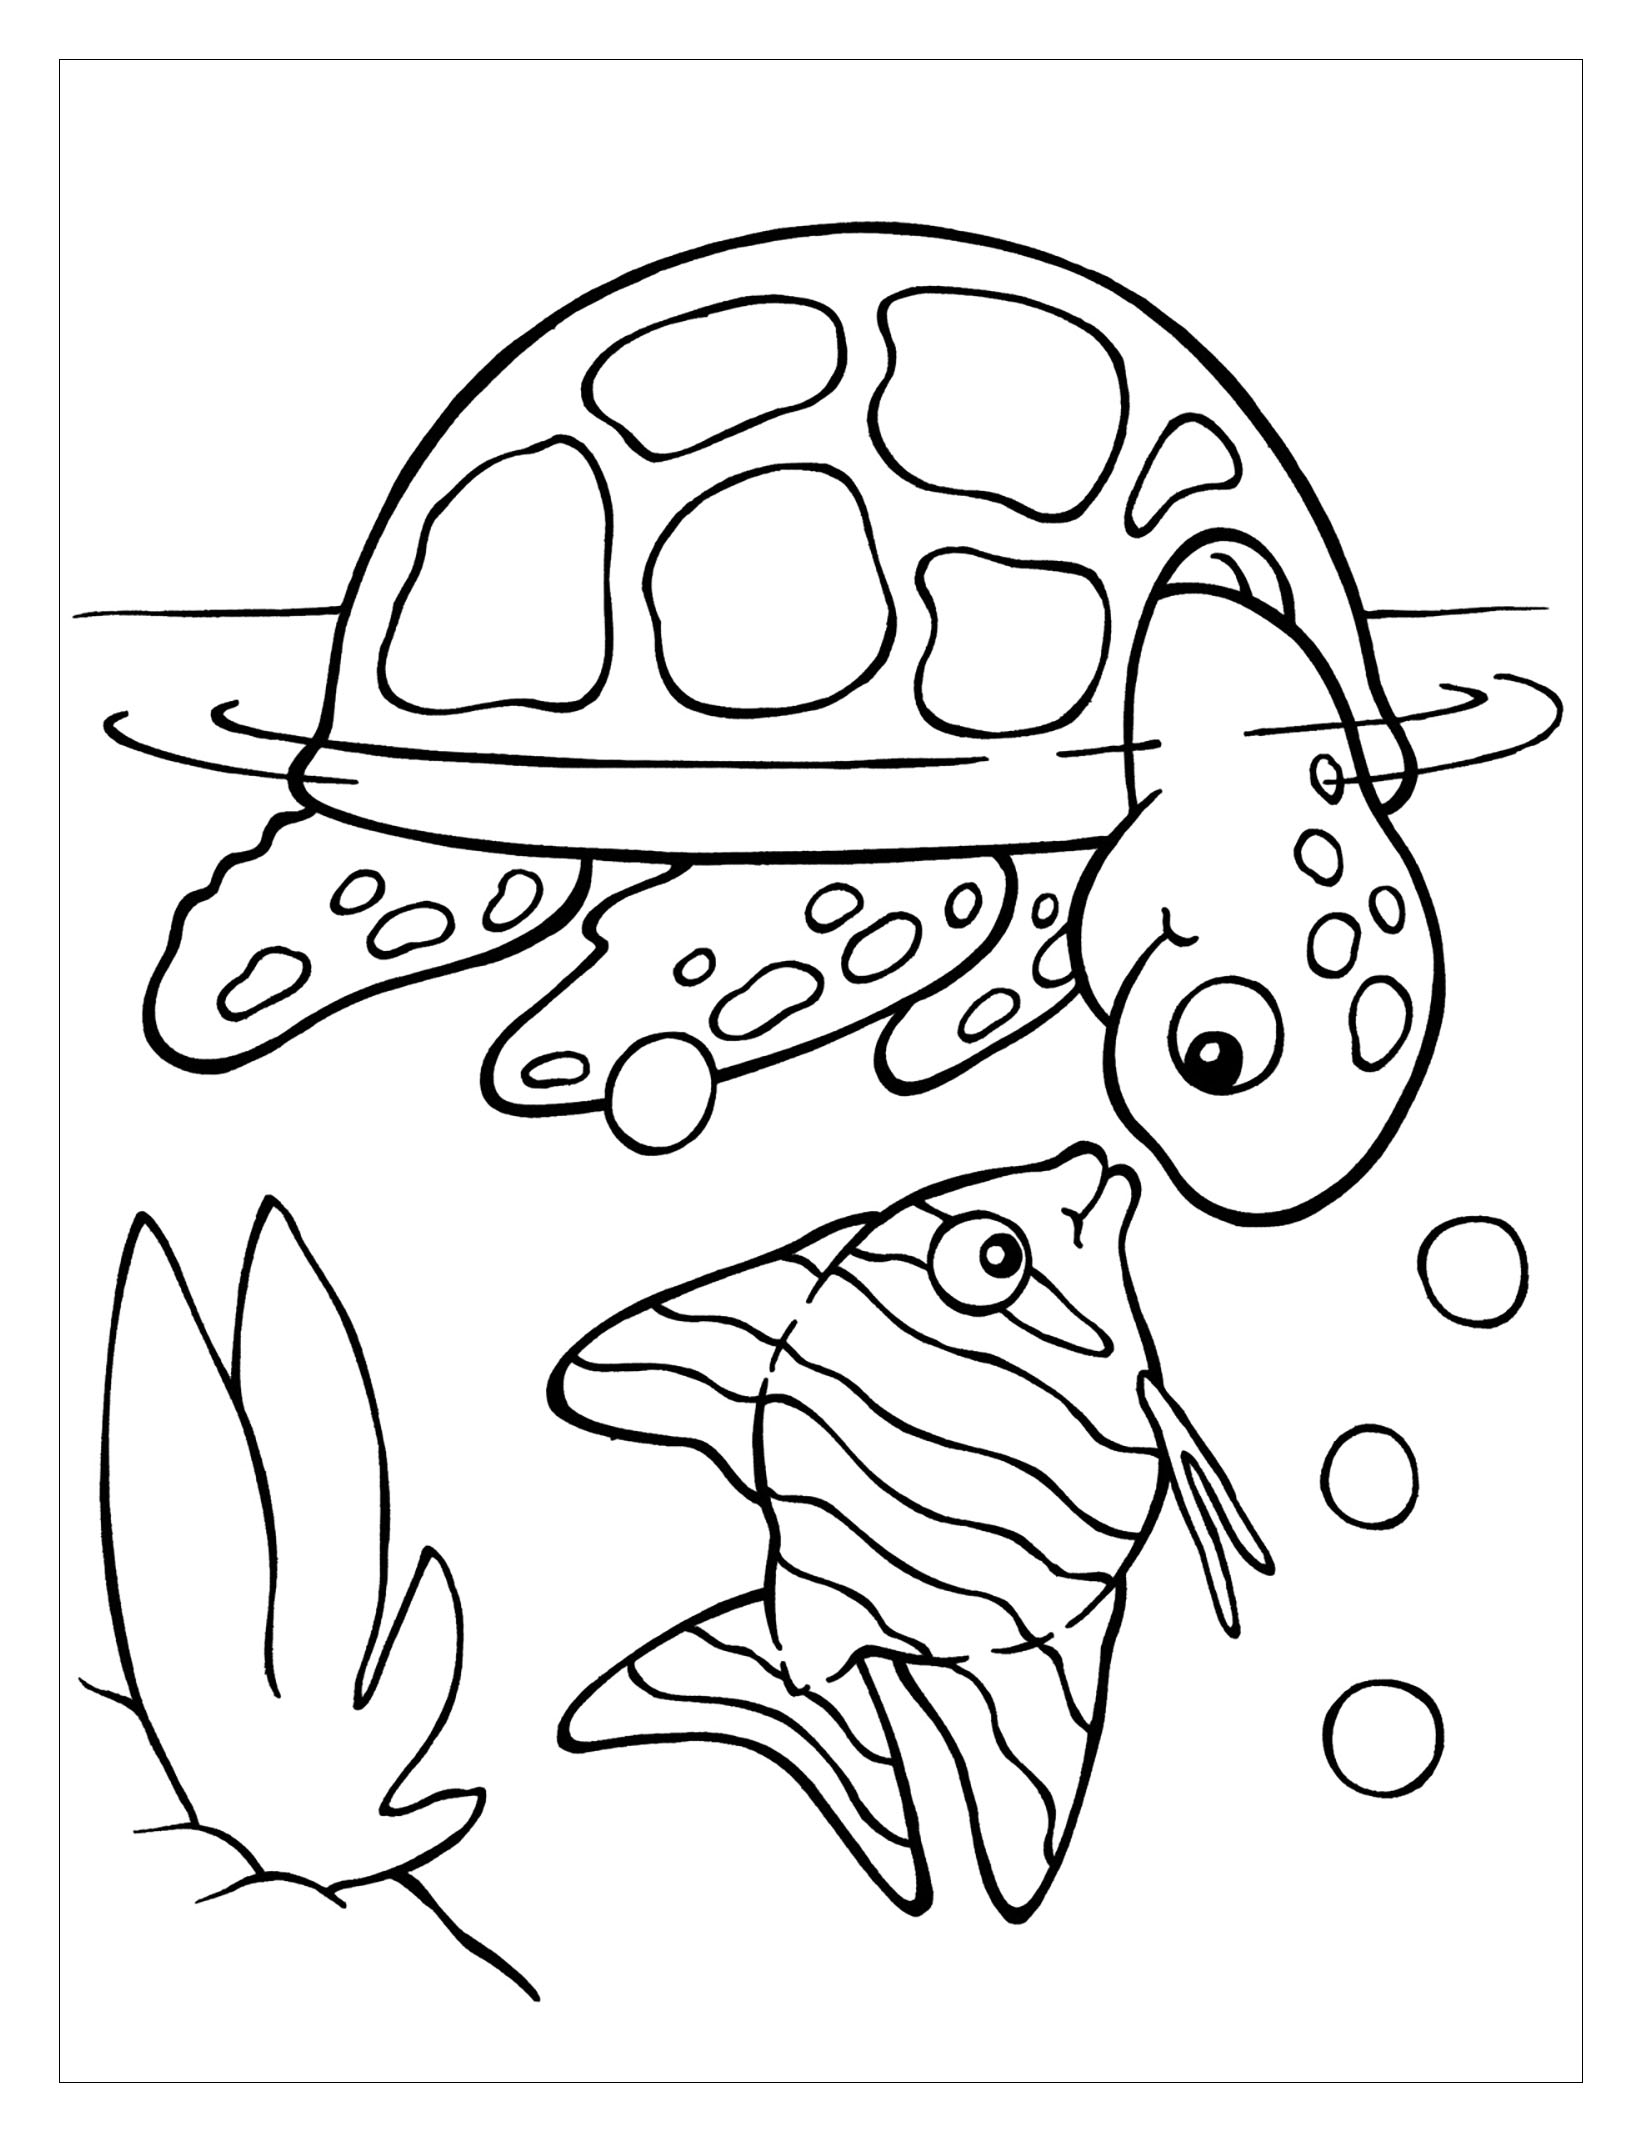 turtle coloring pictures turtles to download for free turtles kids coloring pages turtle pictures coloring